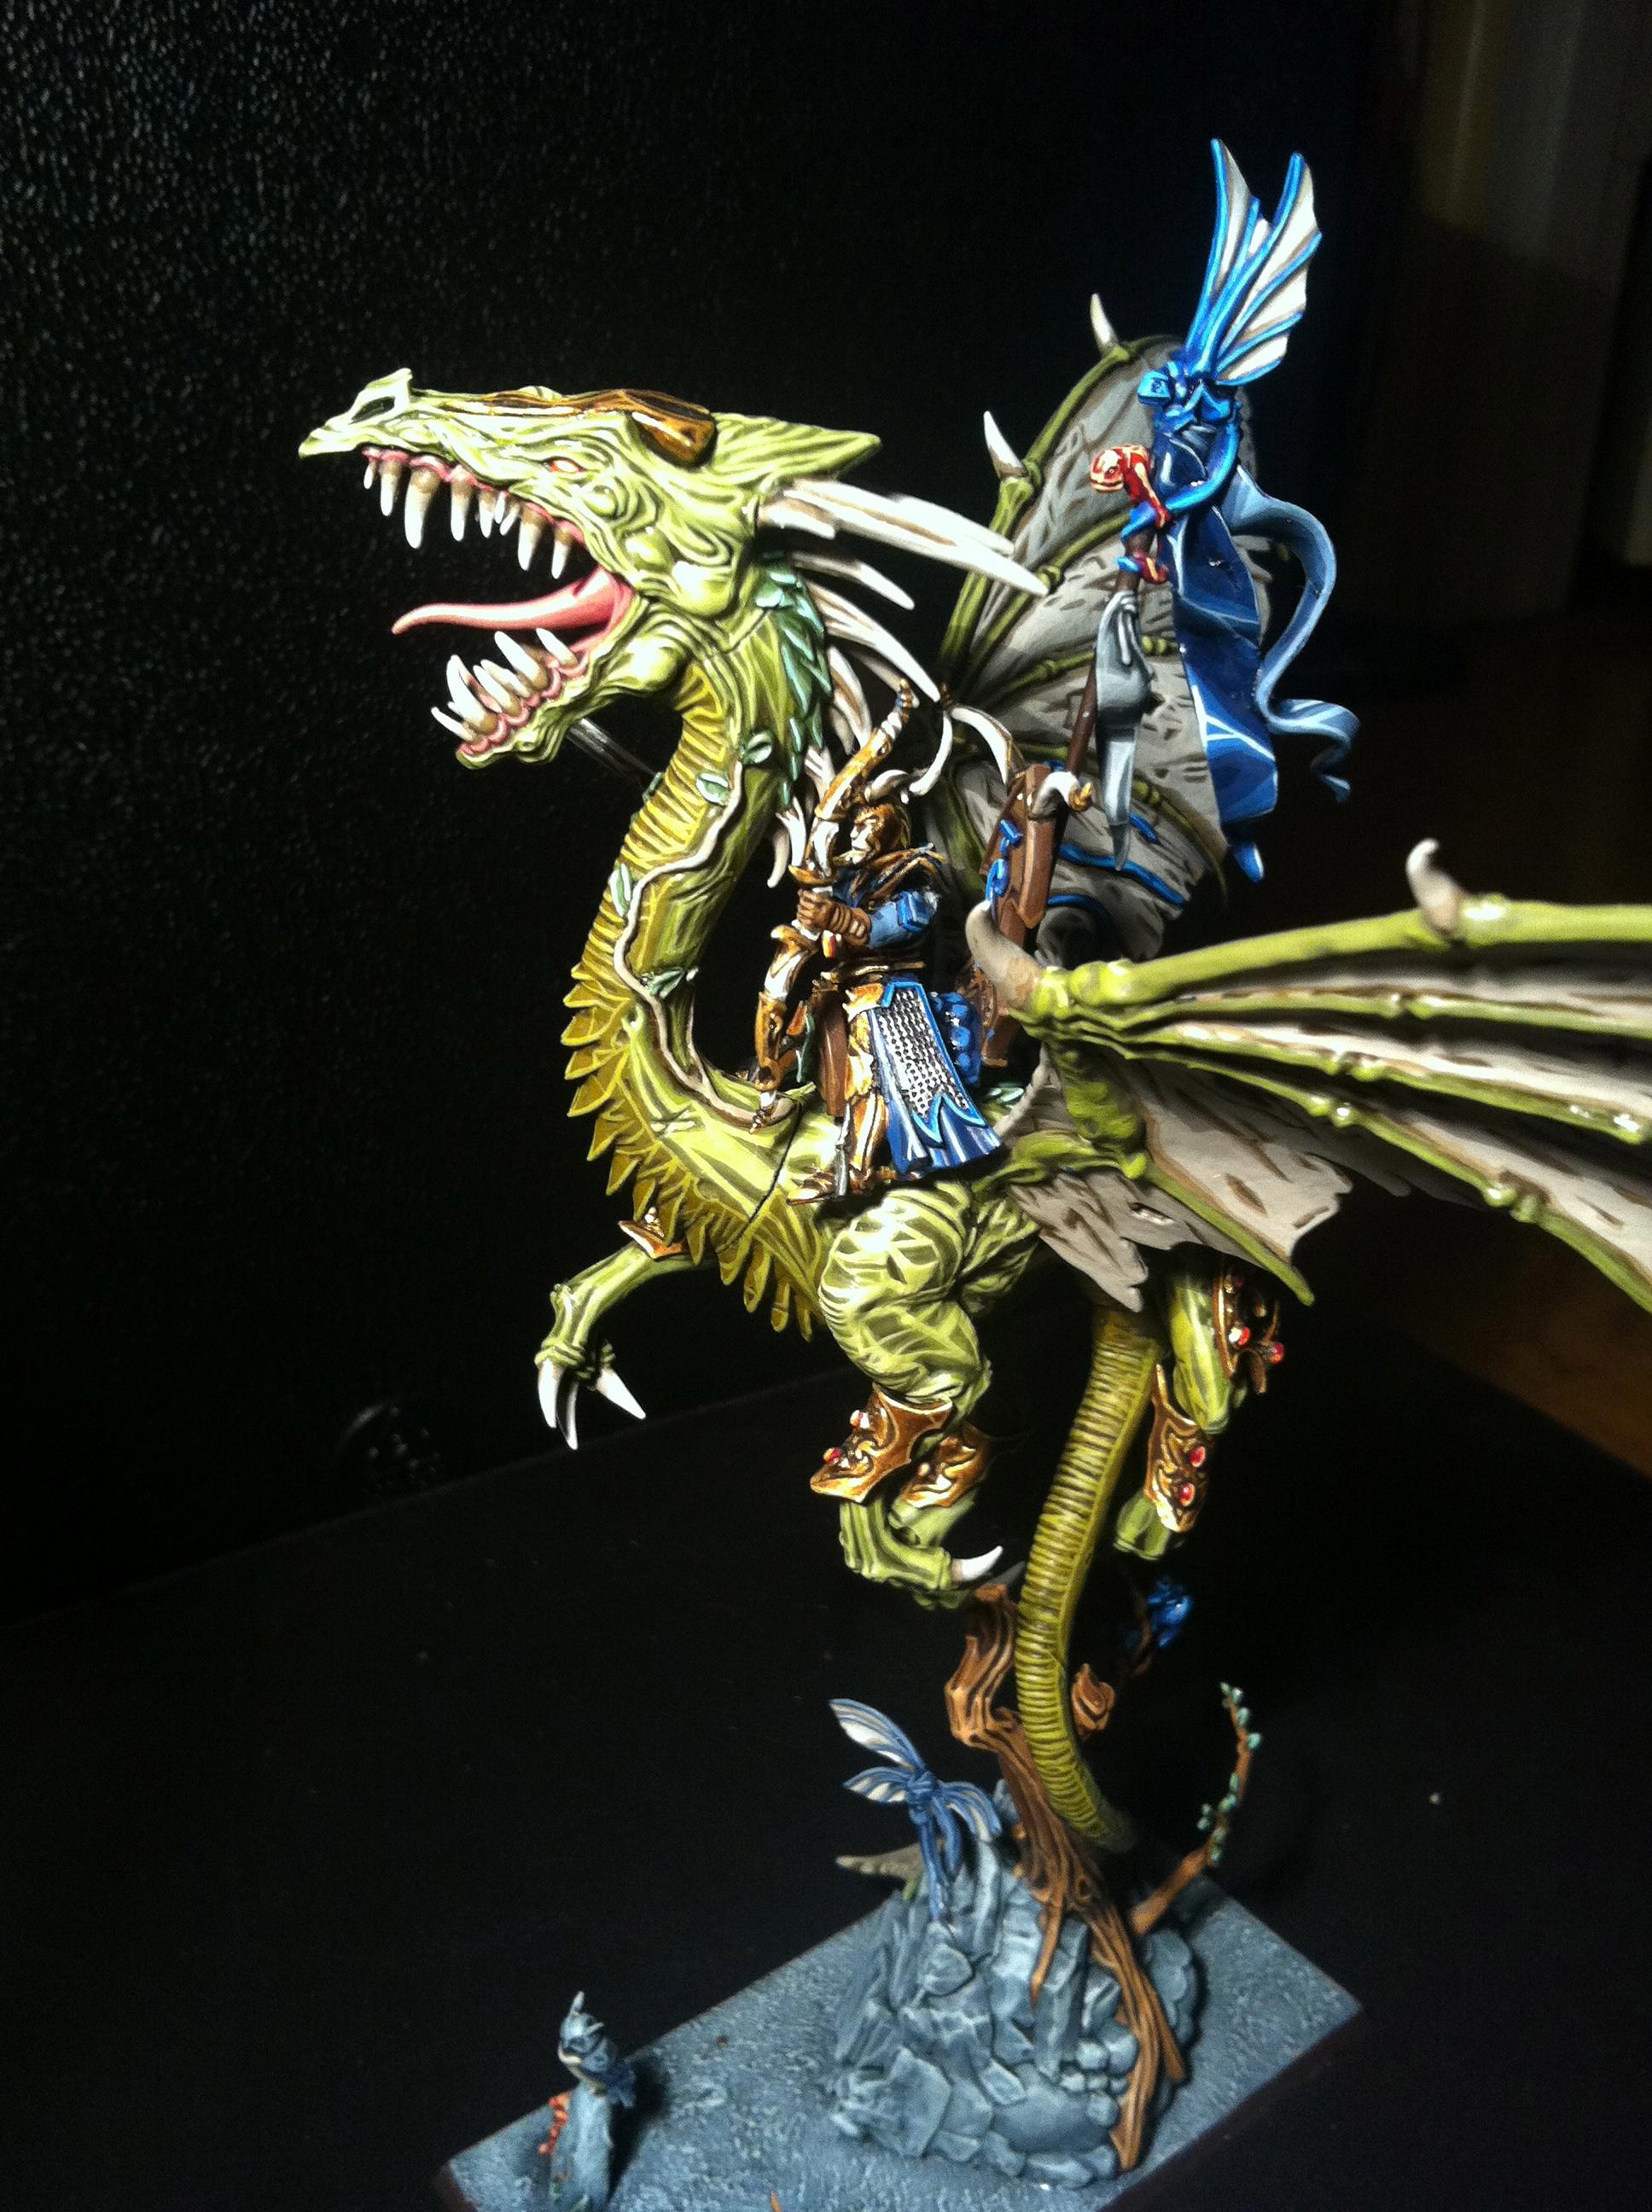 Conversion, Dragon, Warhammer Fantasy, Wood Elves